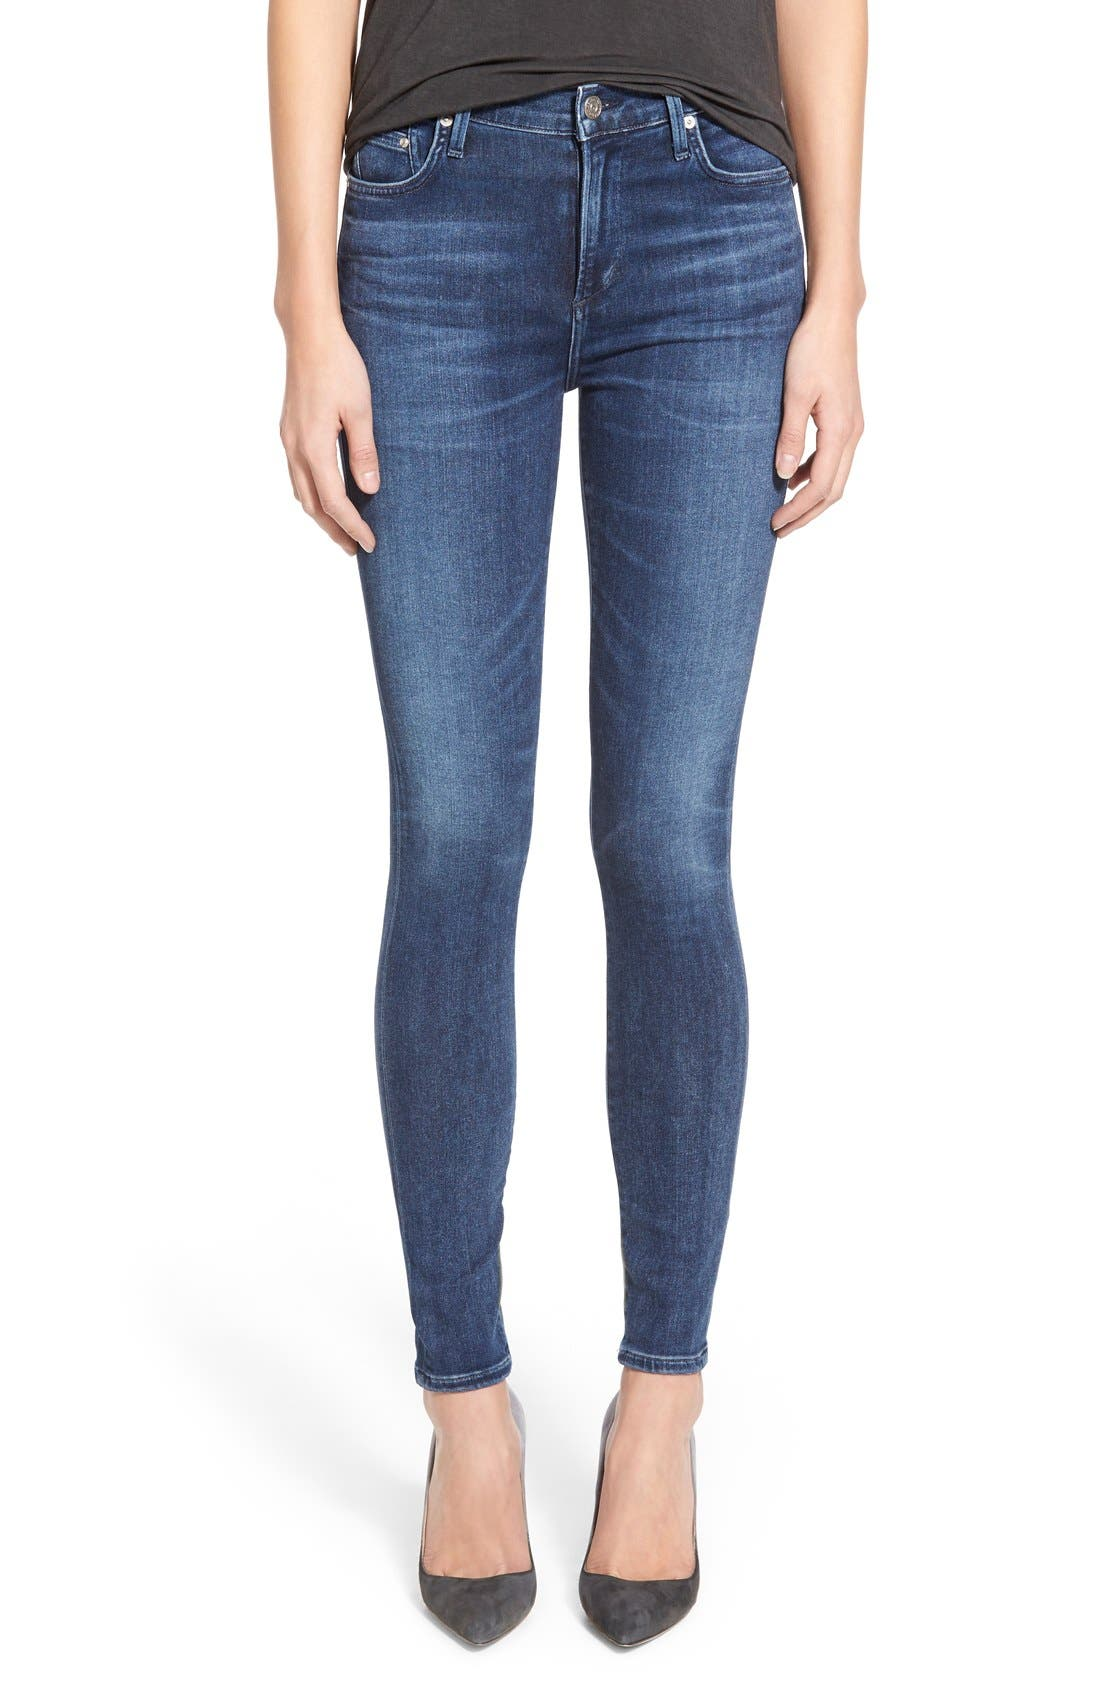 Sculpt - Rocket High Waist Skinny Jeans,                         Main,                         color, Waverly